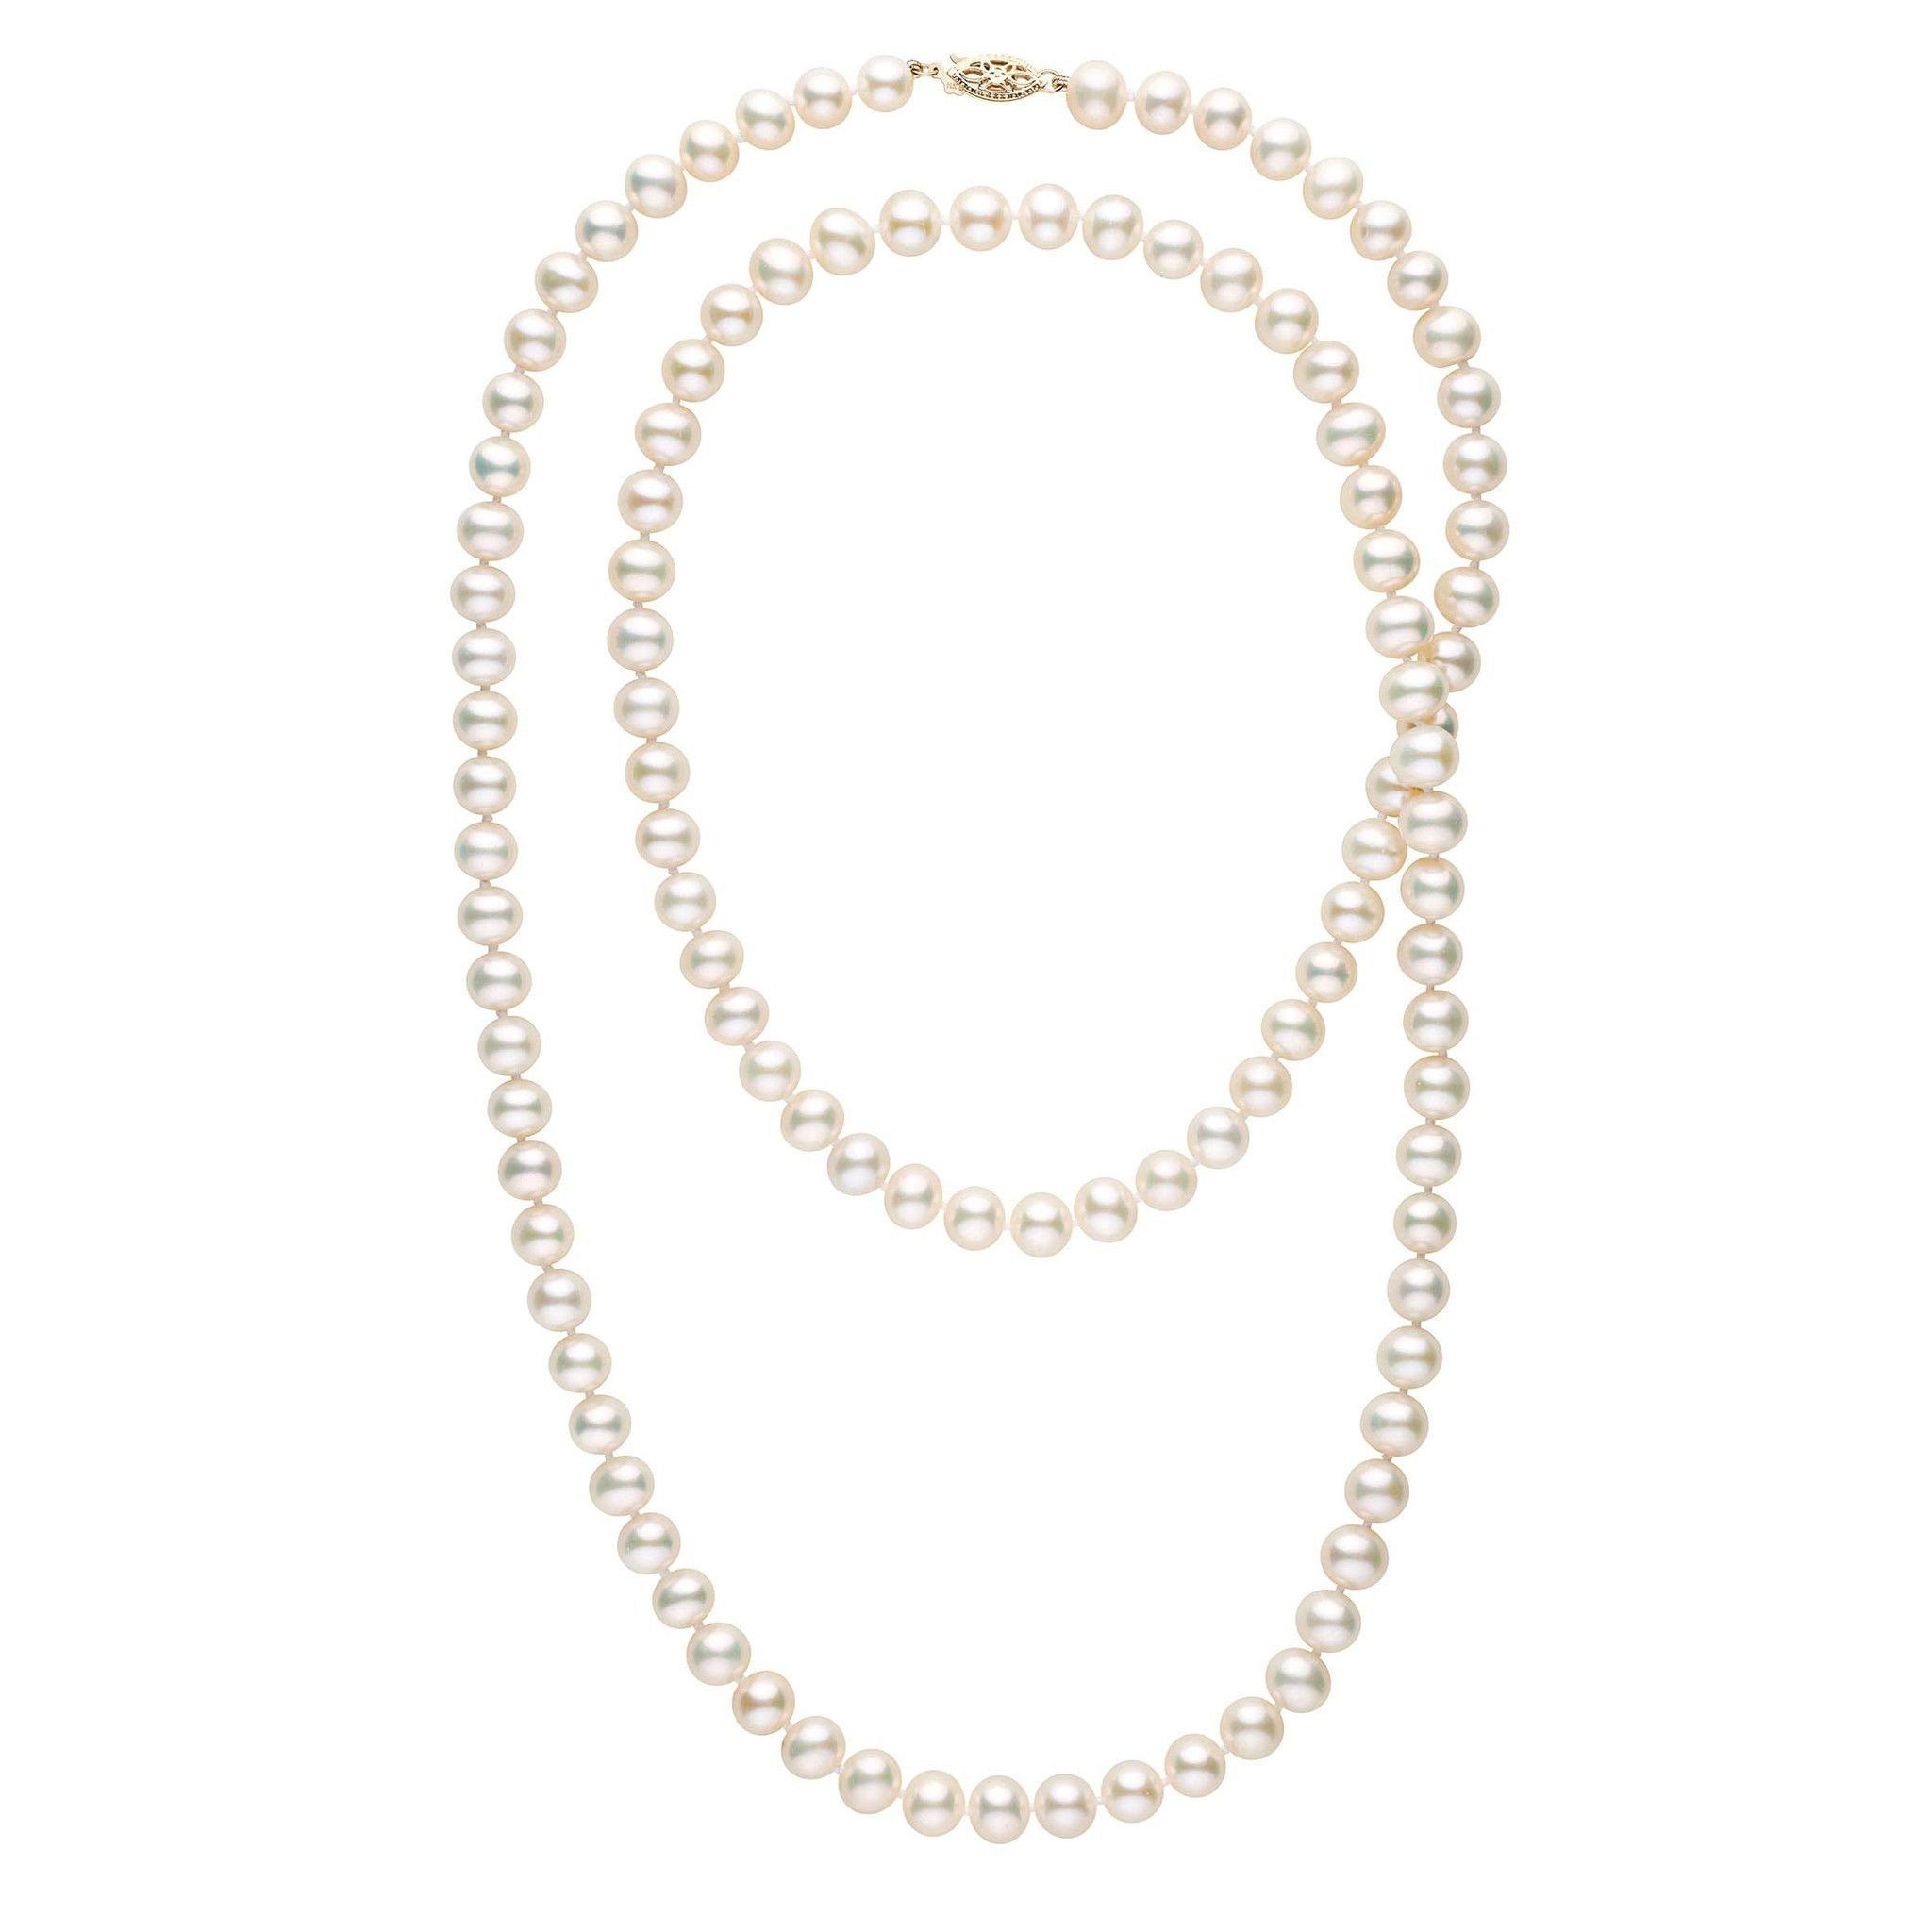 35-inch 7.5-8.0 mm AAA White Freshwater Pearl Necklace